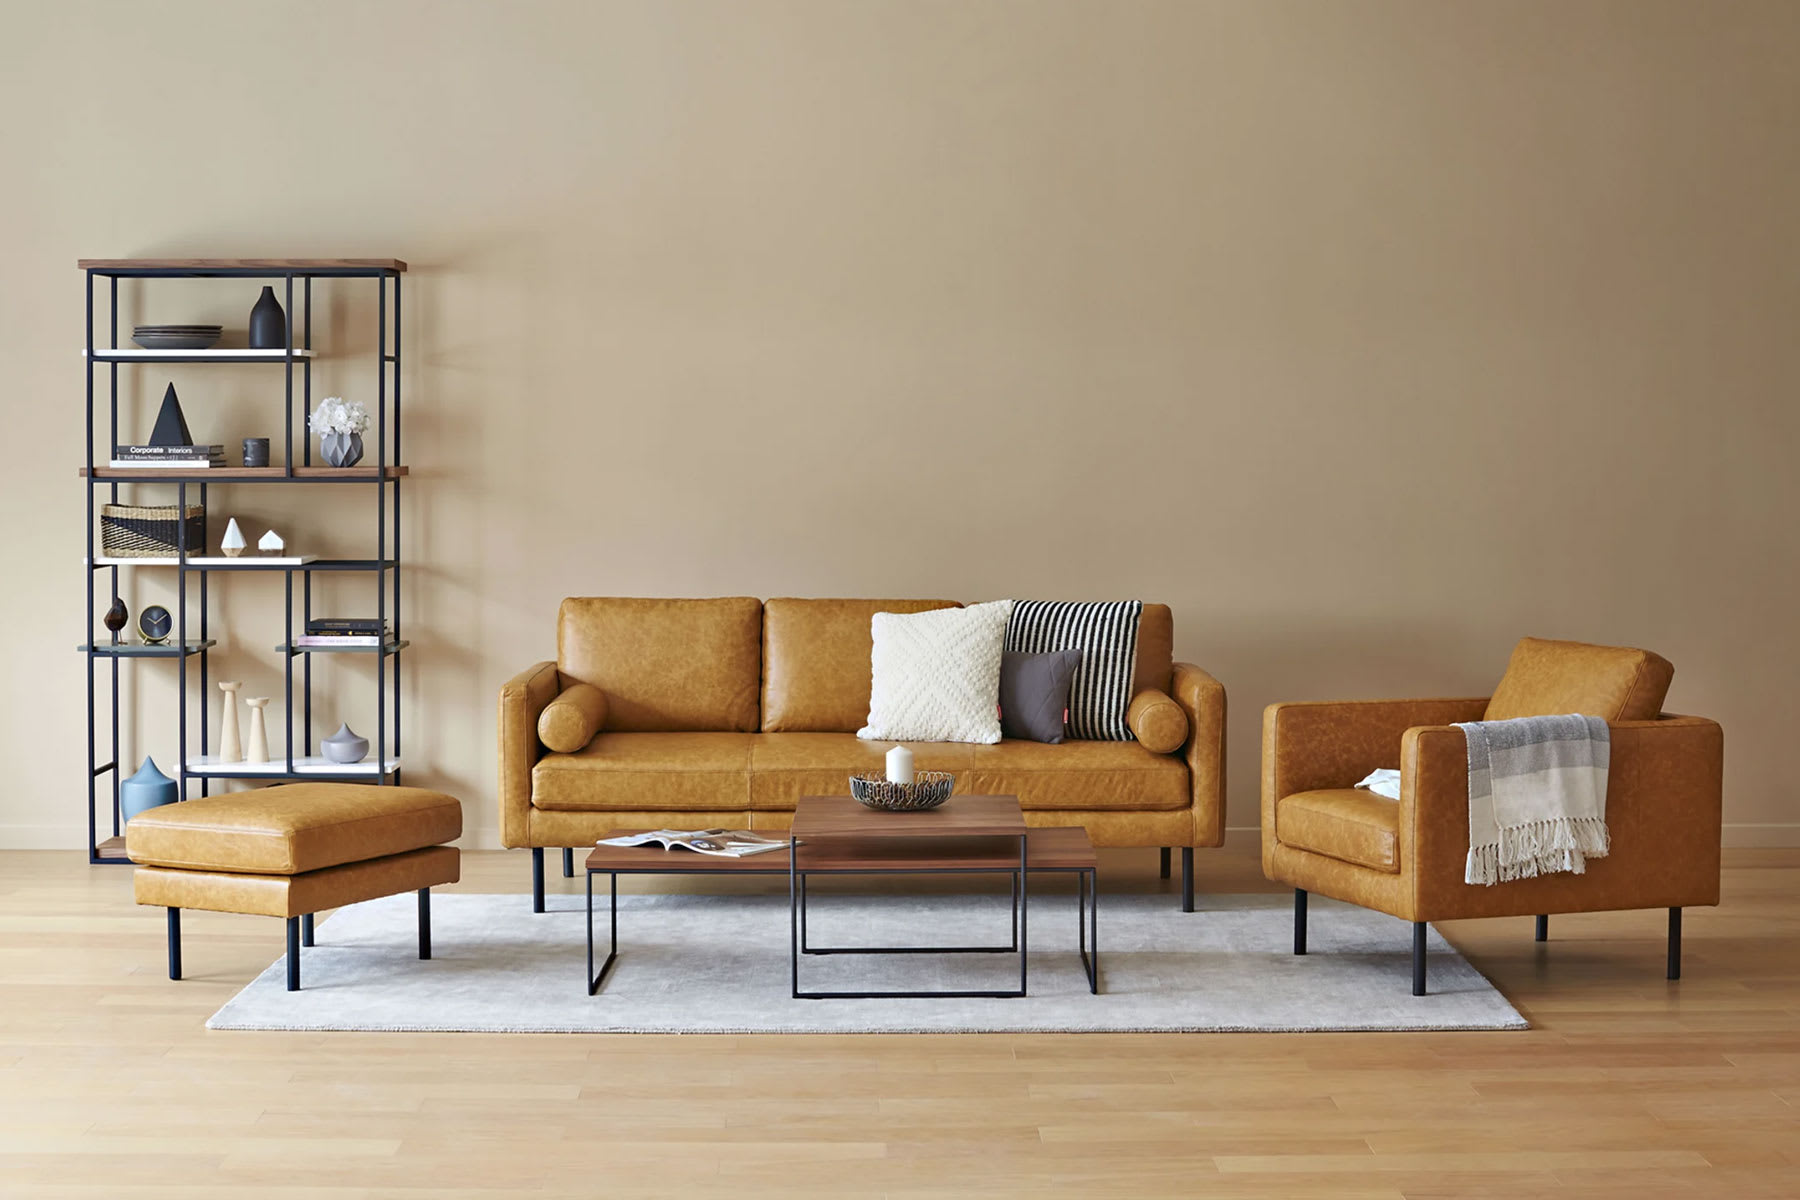 brown leather sofa in living room with armchair, ottoman and coffee table